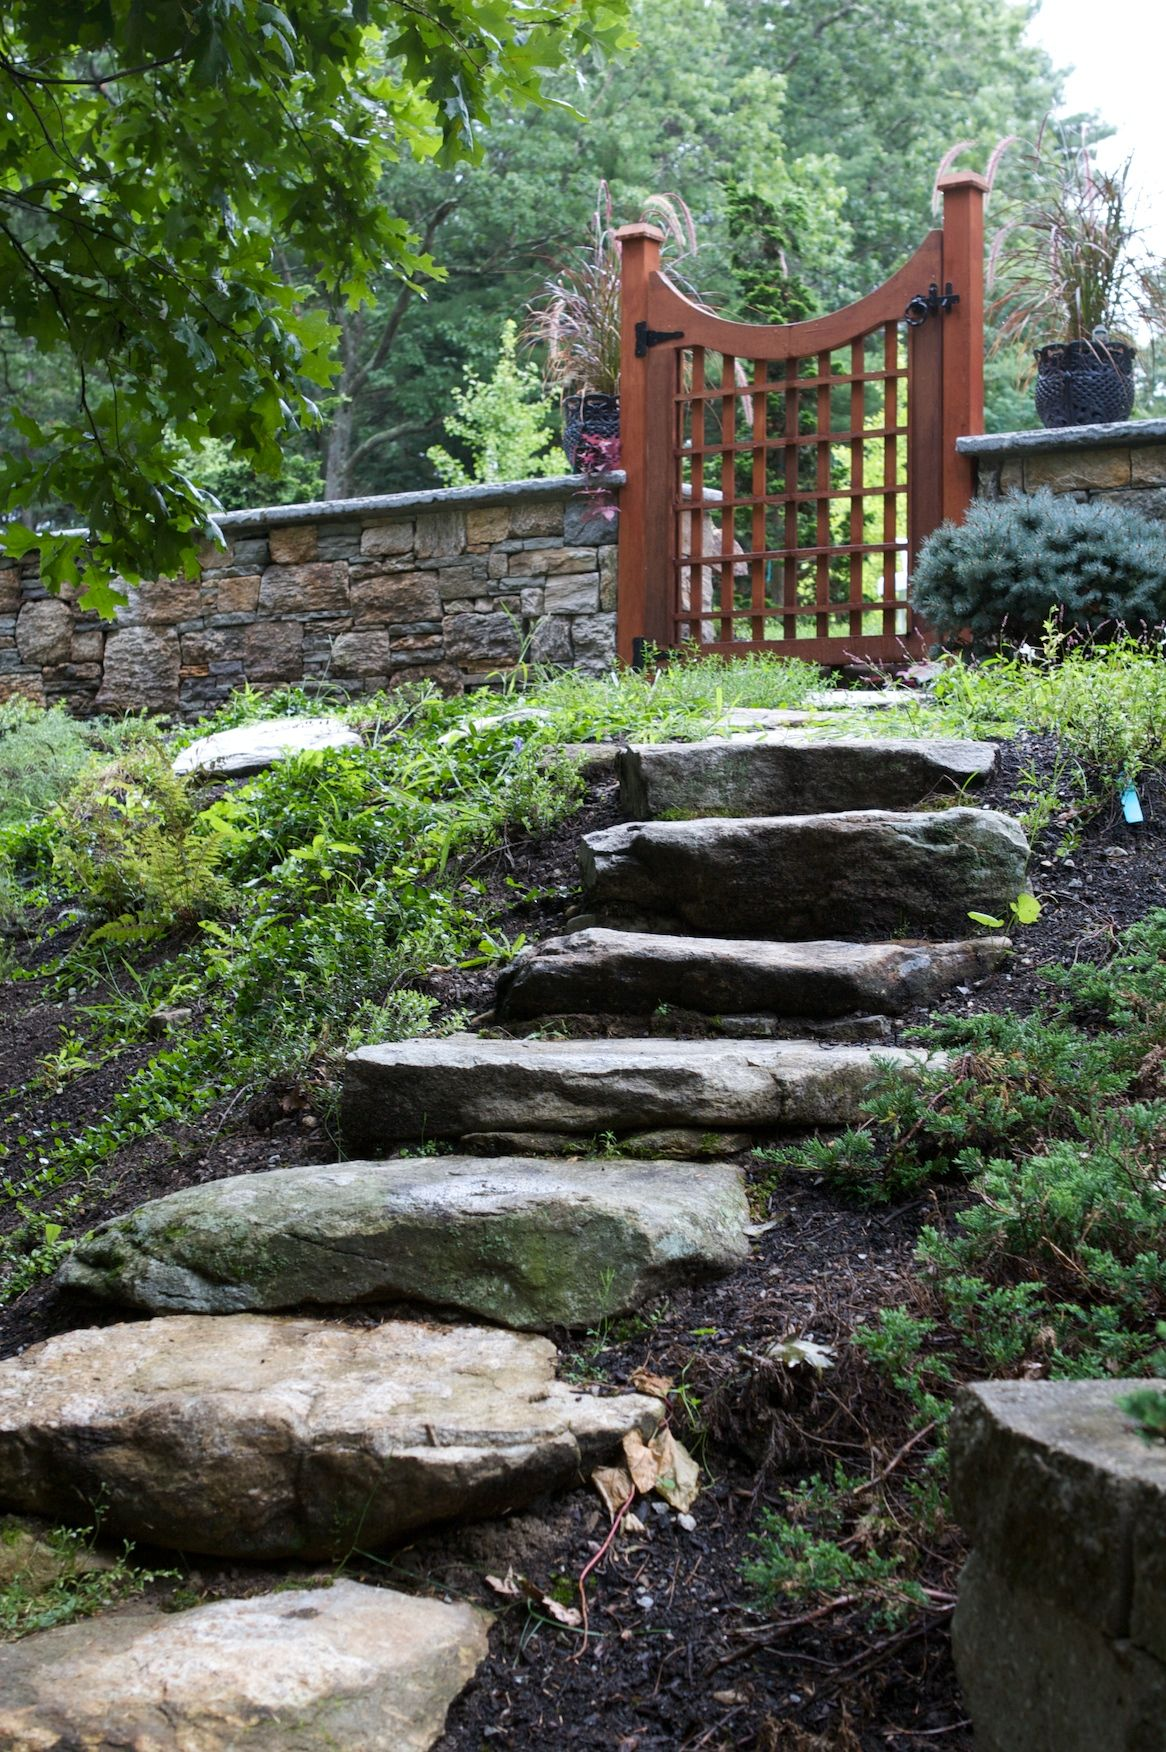 Natural stone slabs create a stairway to wooden gate gates